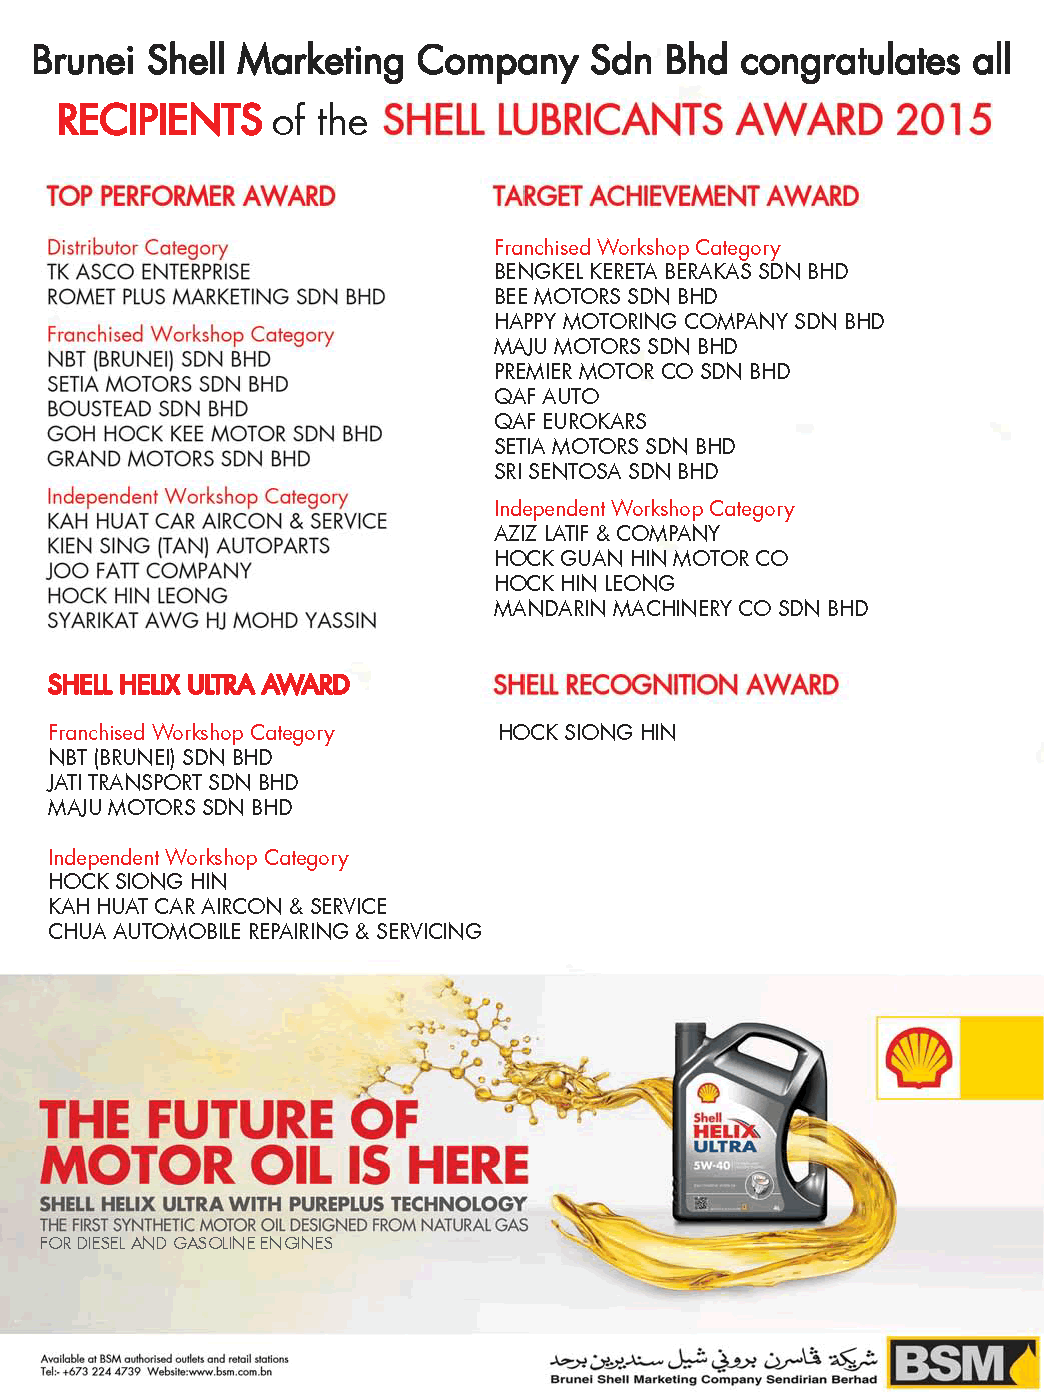 shell lubricants awards 2015